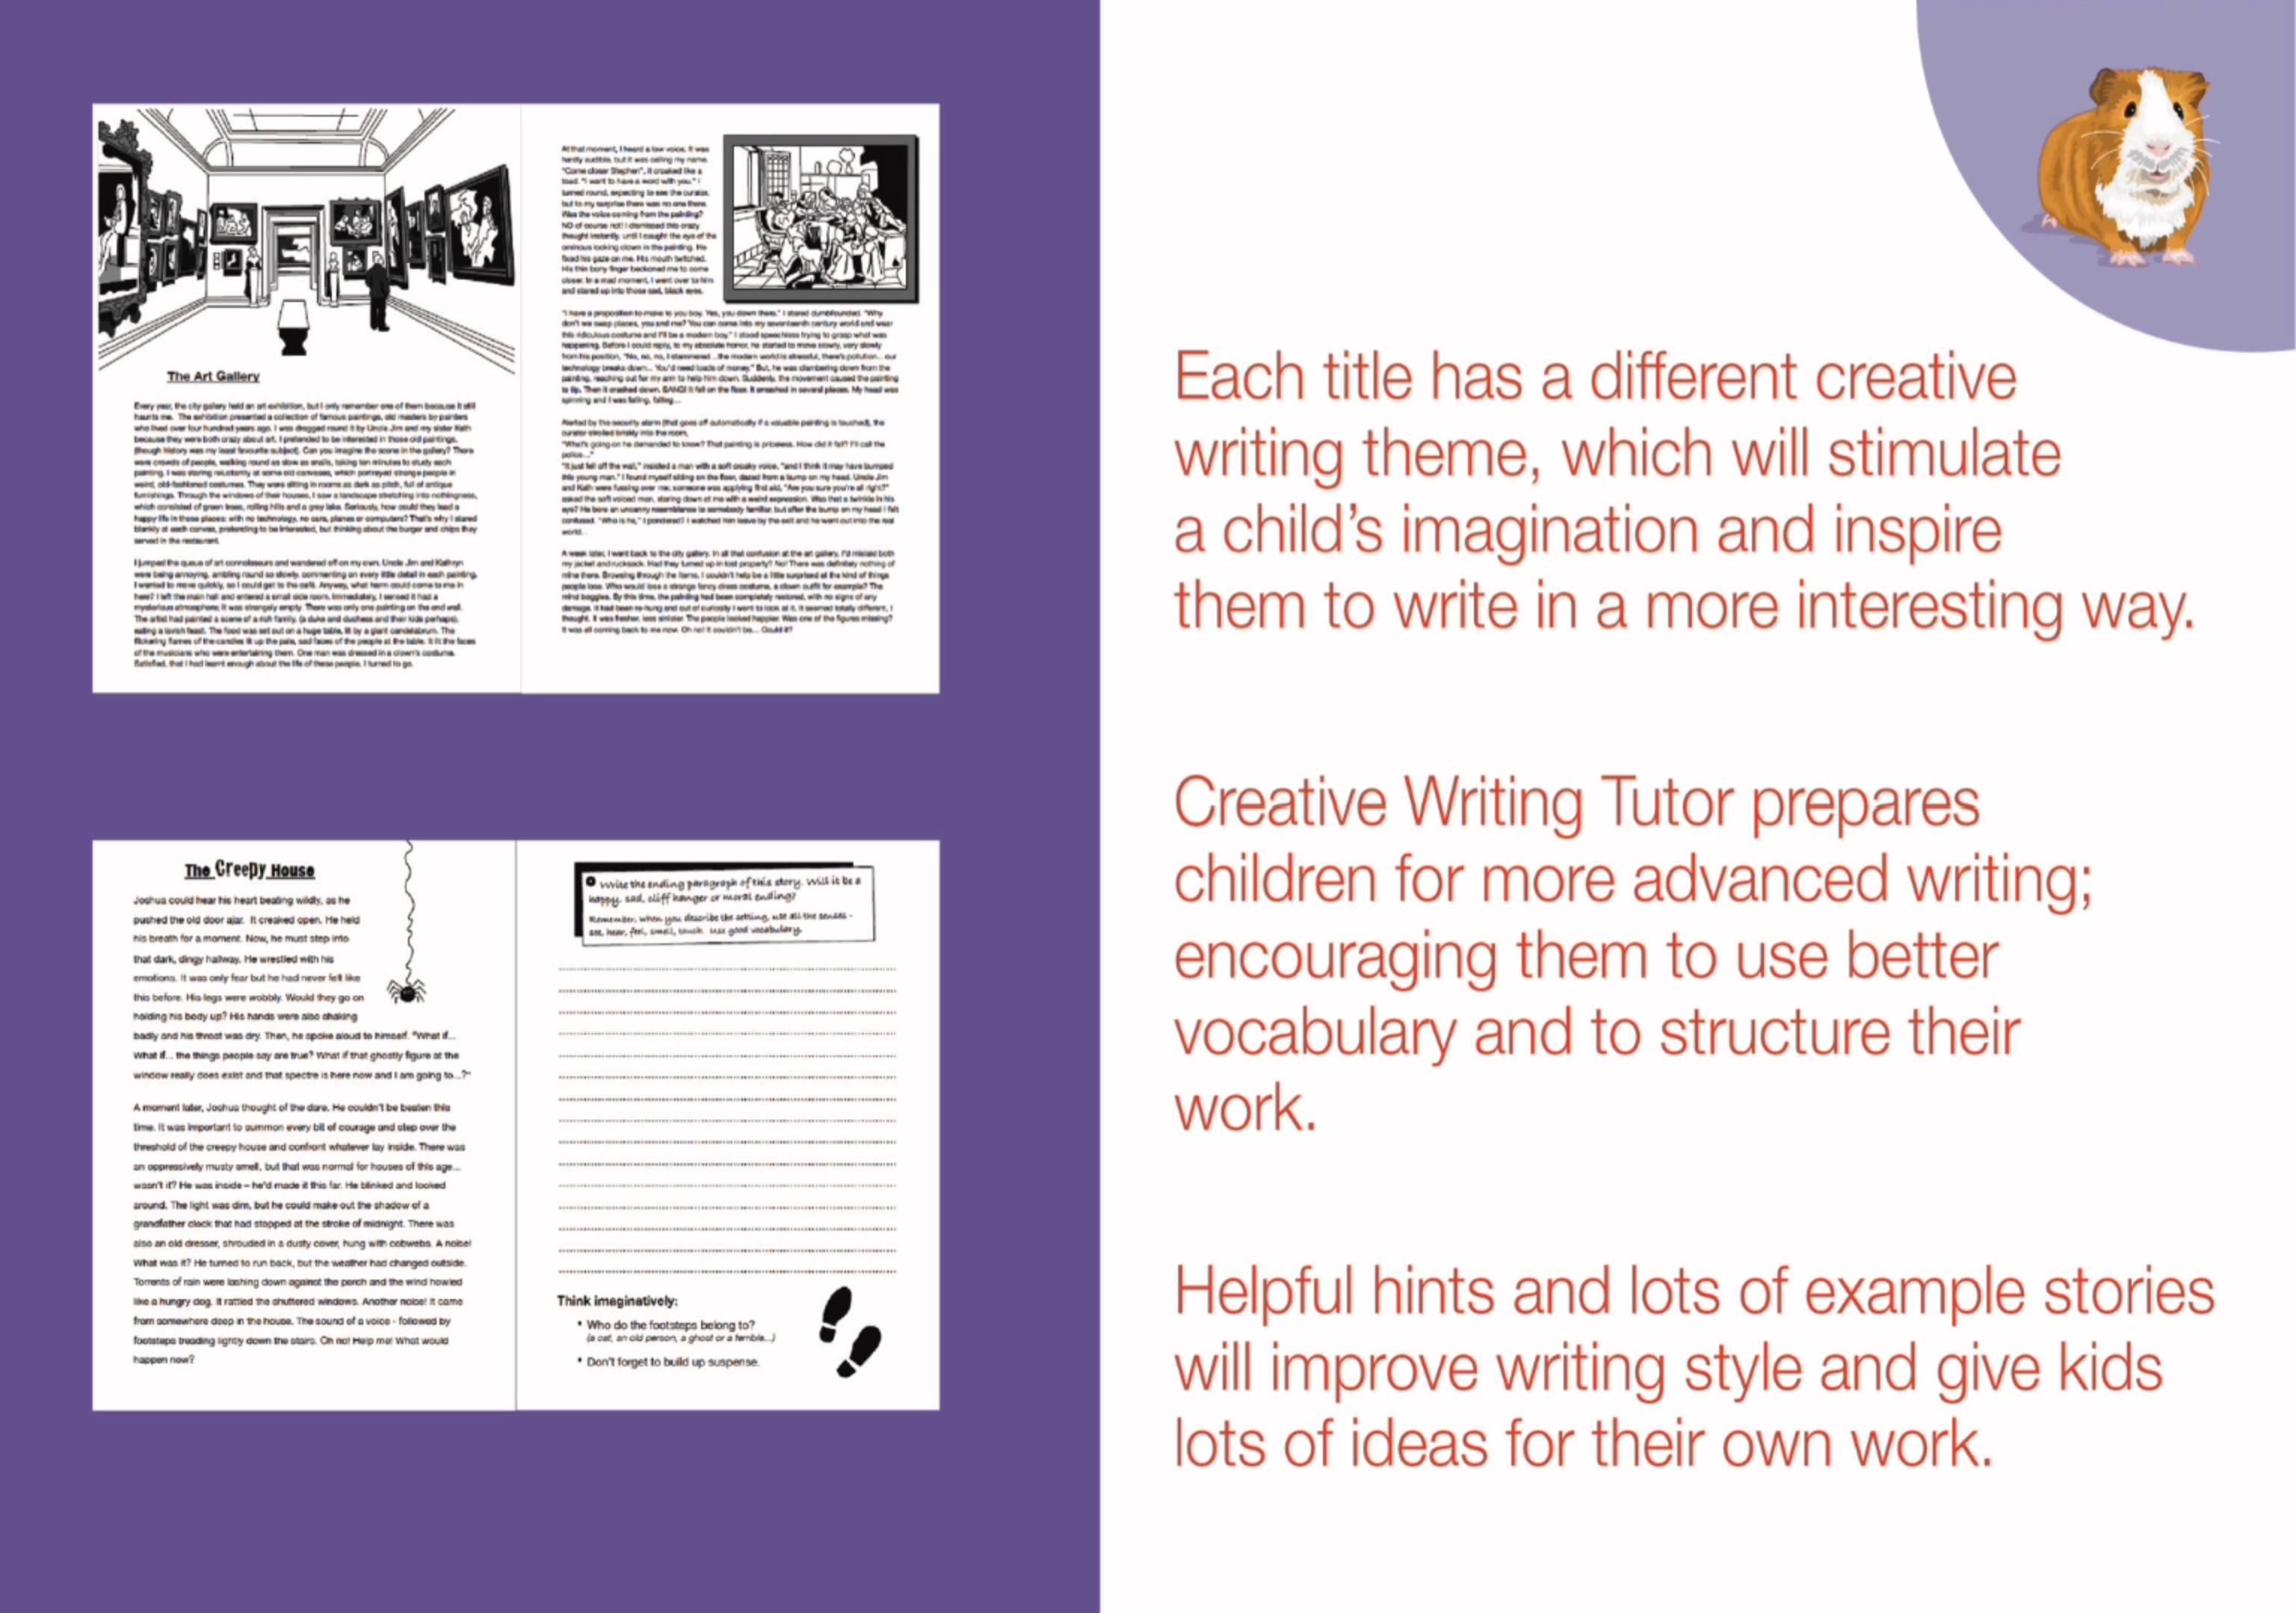 Highly Recommended: Learn Comprehension Skills 'The Cupcake' 9-12 years